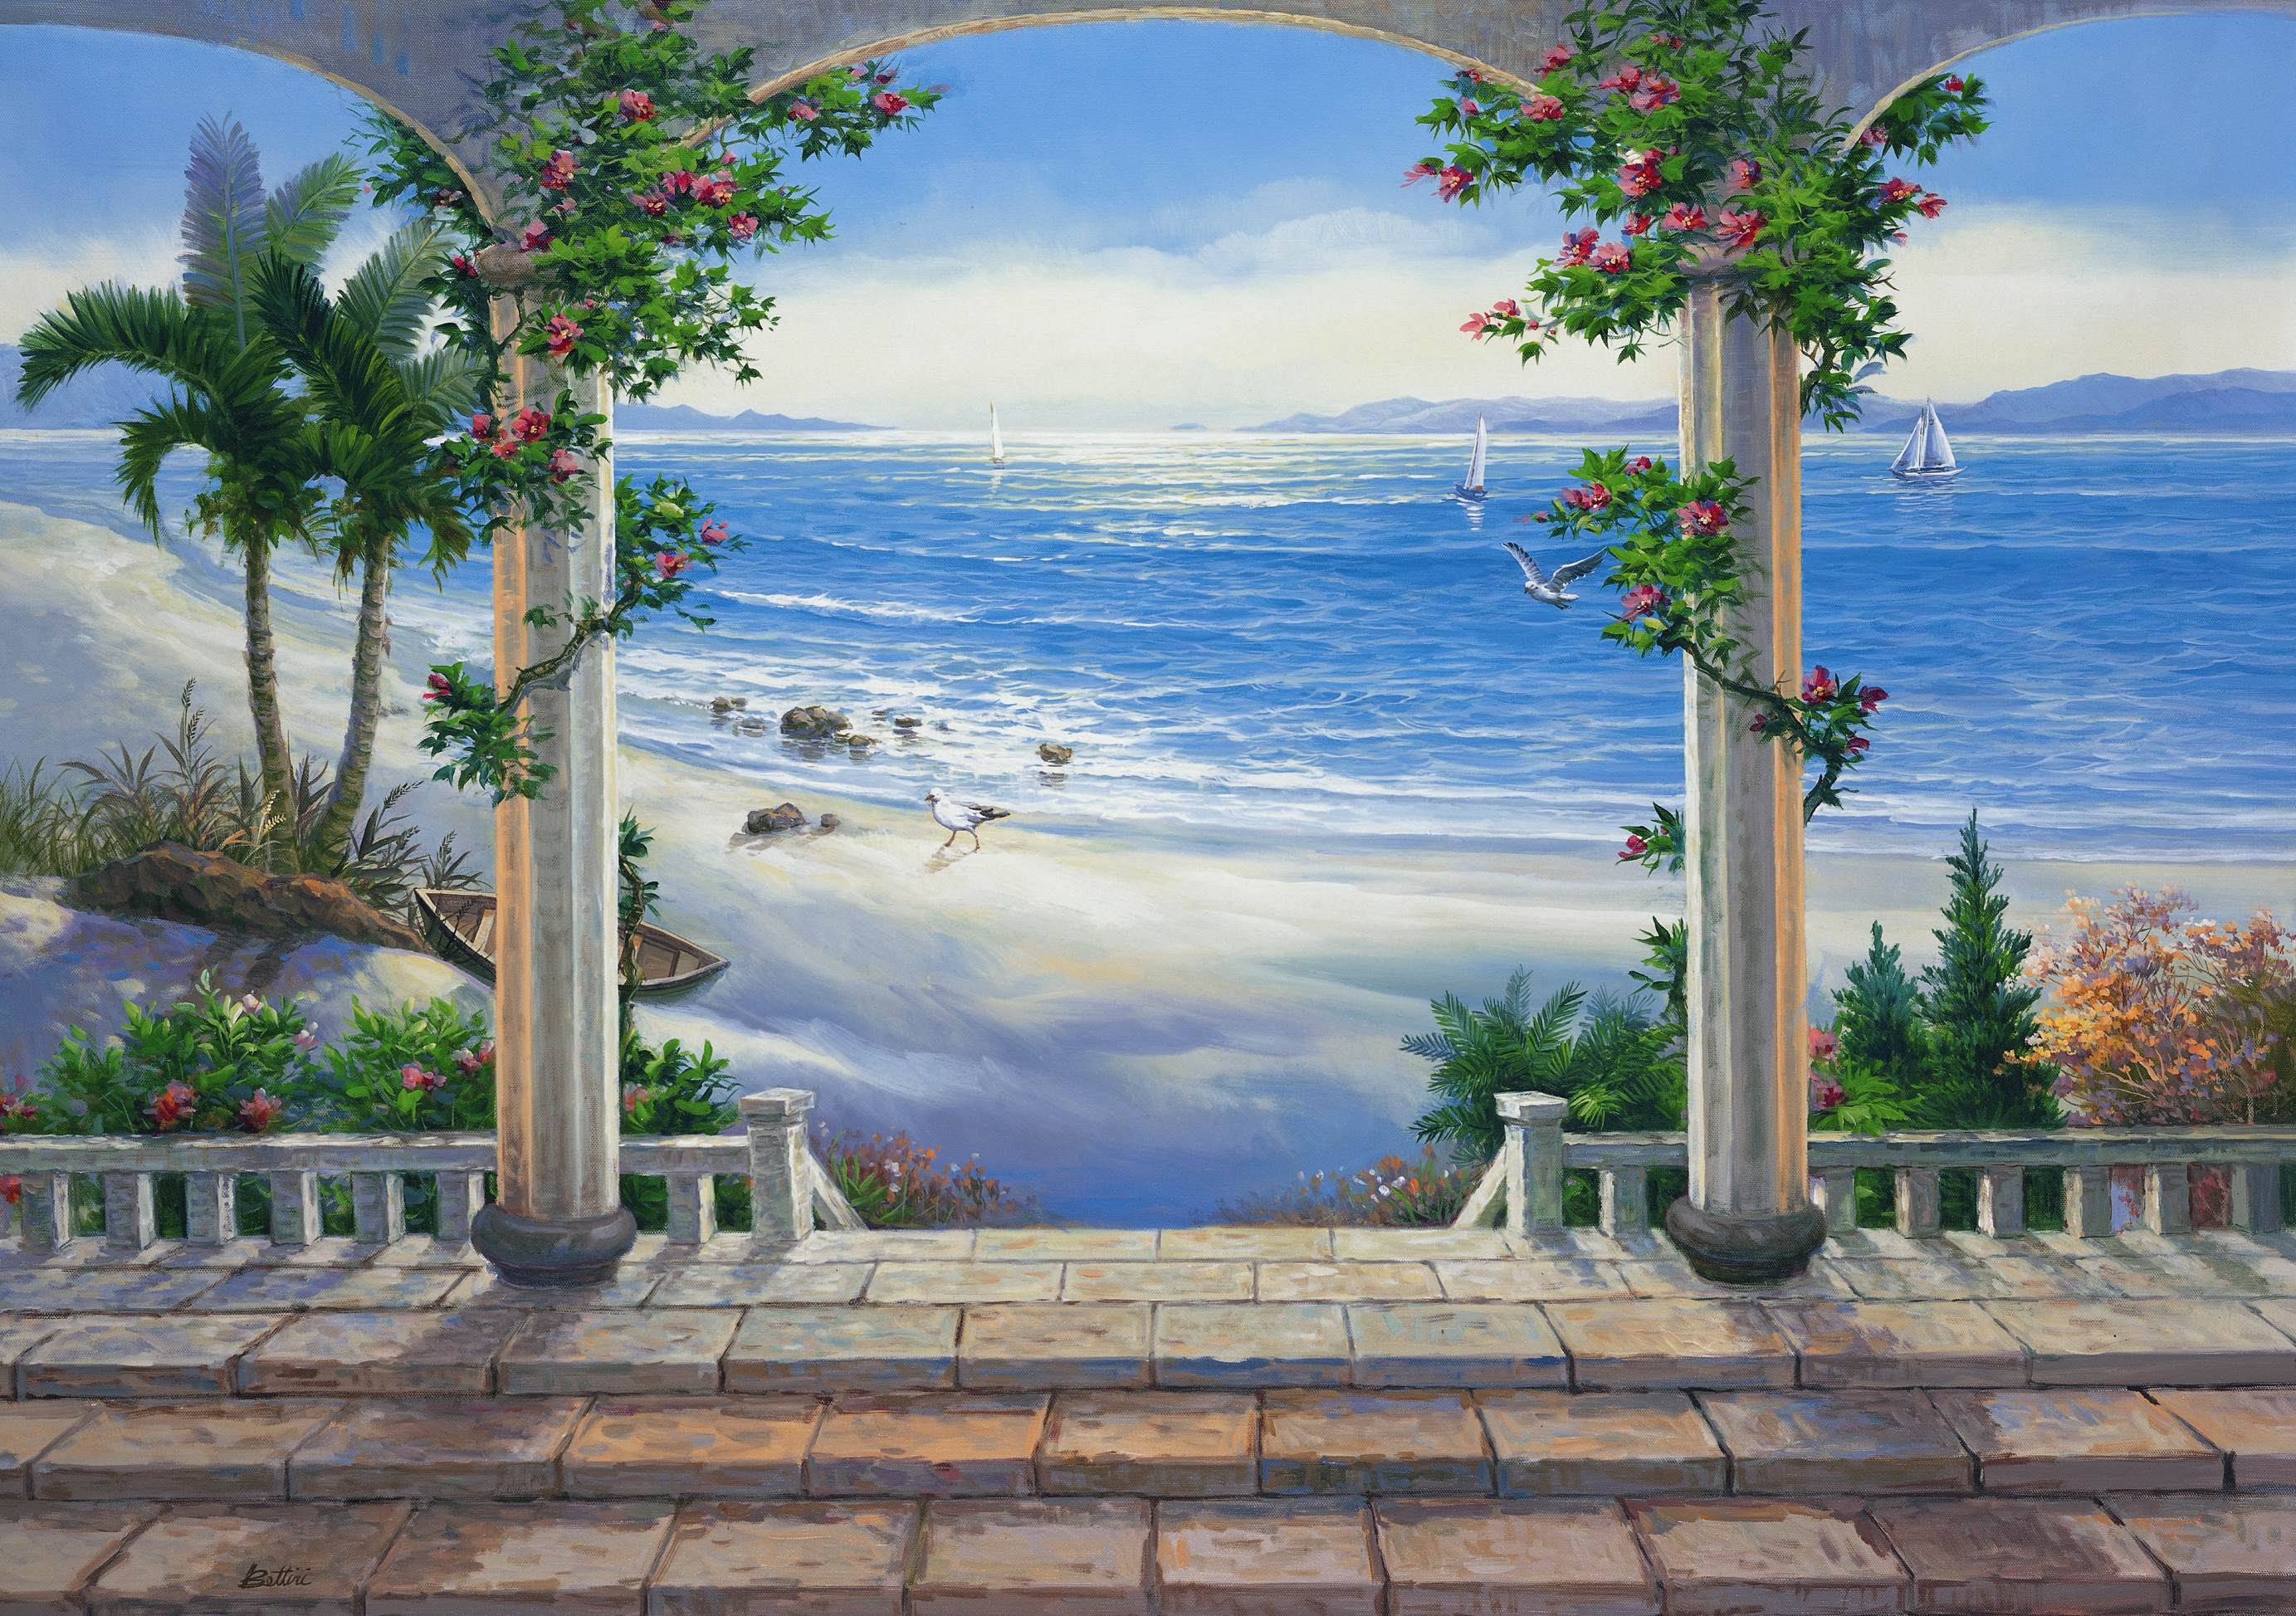 3d wall murals for walls download wallpaper free for Mural 3d wallpaper